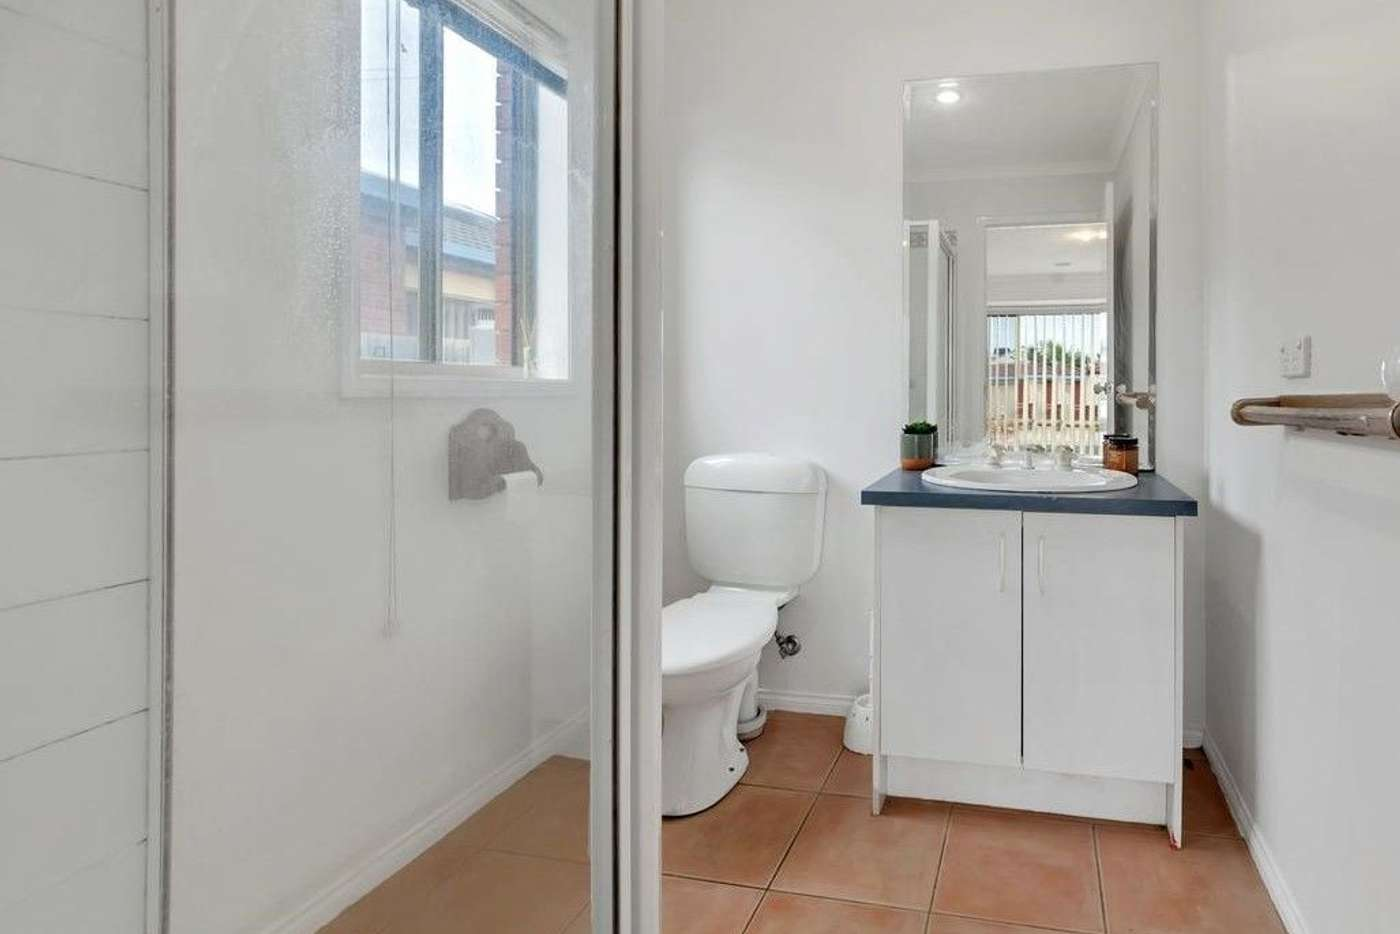 Sixth view of Homely house listing, 3 Breton Drive, Hoppers Crossing VIC 3029